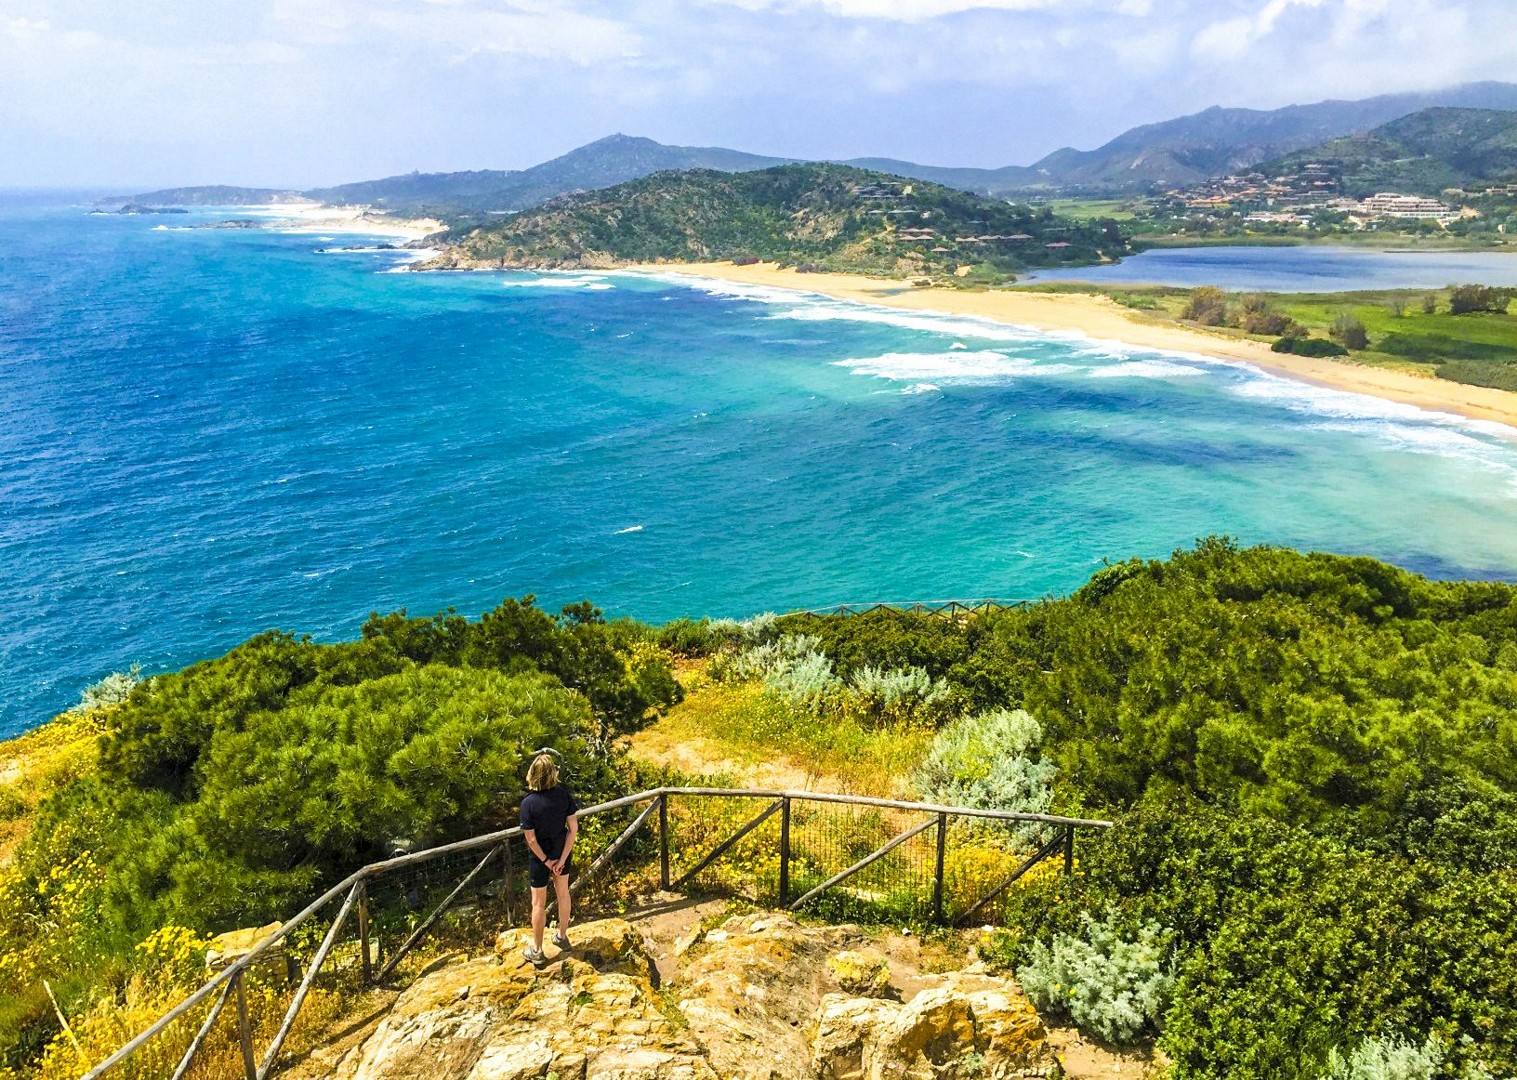 leisure-cycling-saddle-skedaddle-island-flavours-sardinia-italy.jpg - Italy - Sardinia - Island Flavours - Self-Guided Leisure Cycling Holiday - Italia Leisure and Family Cycling